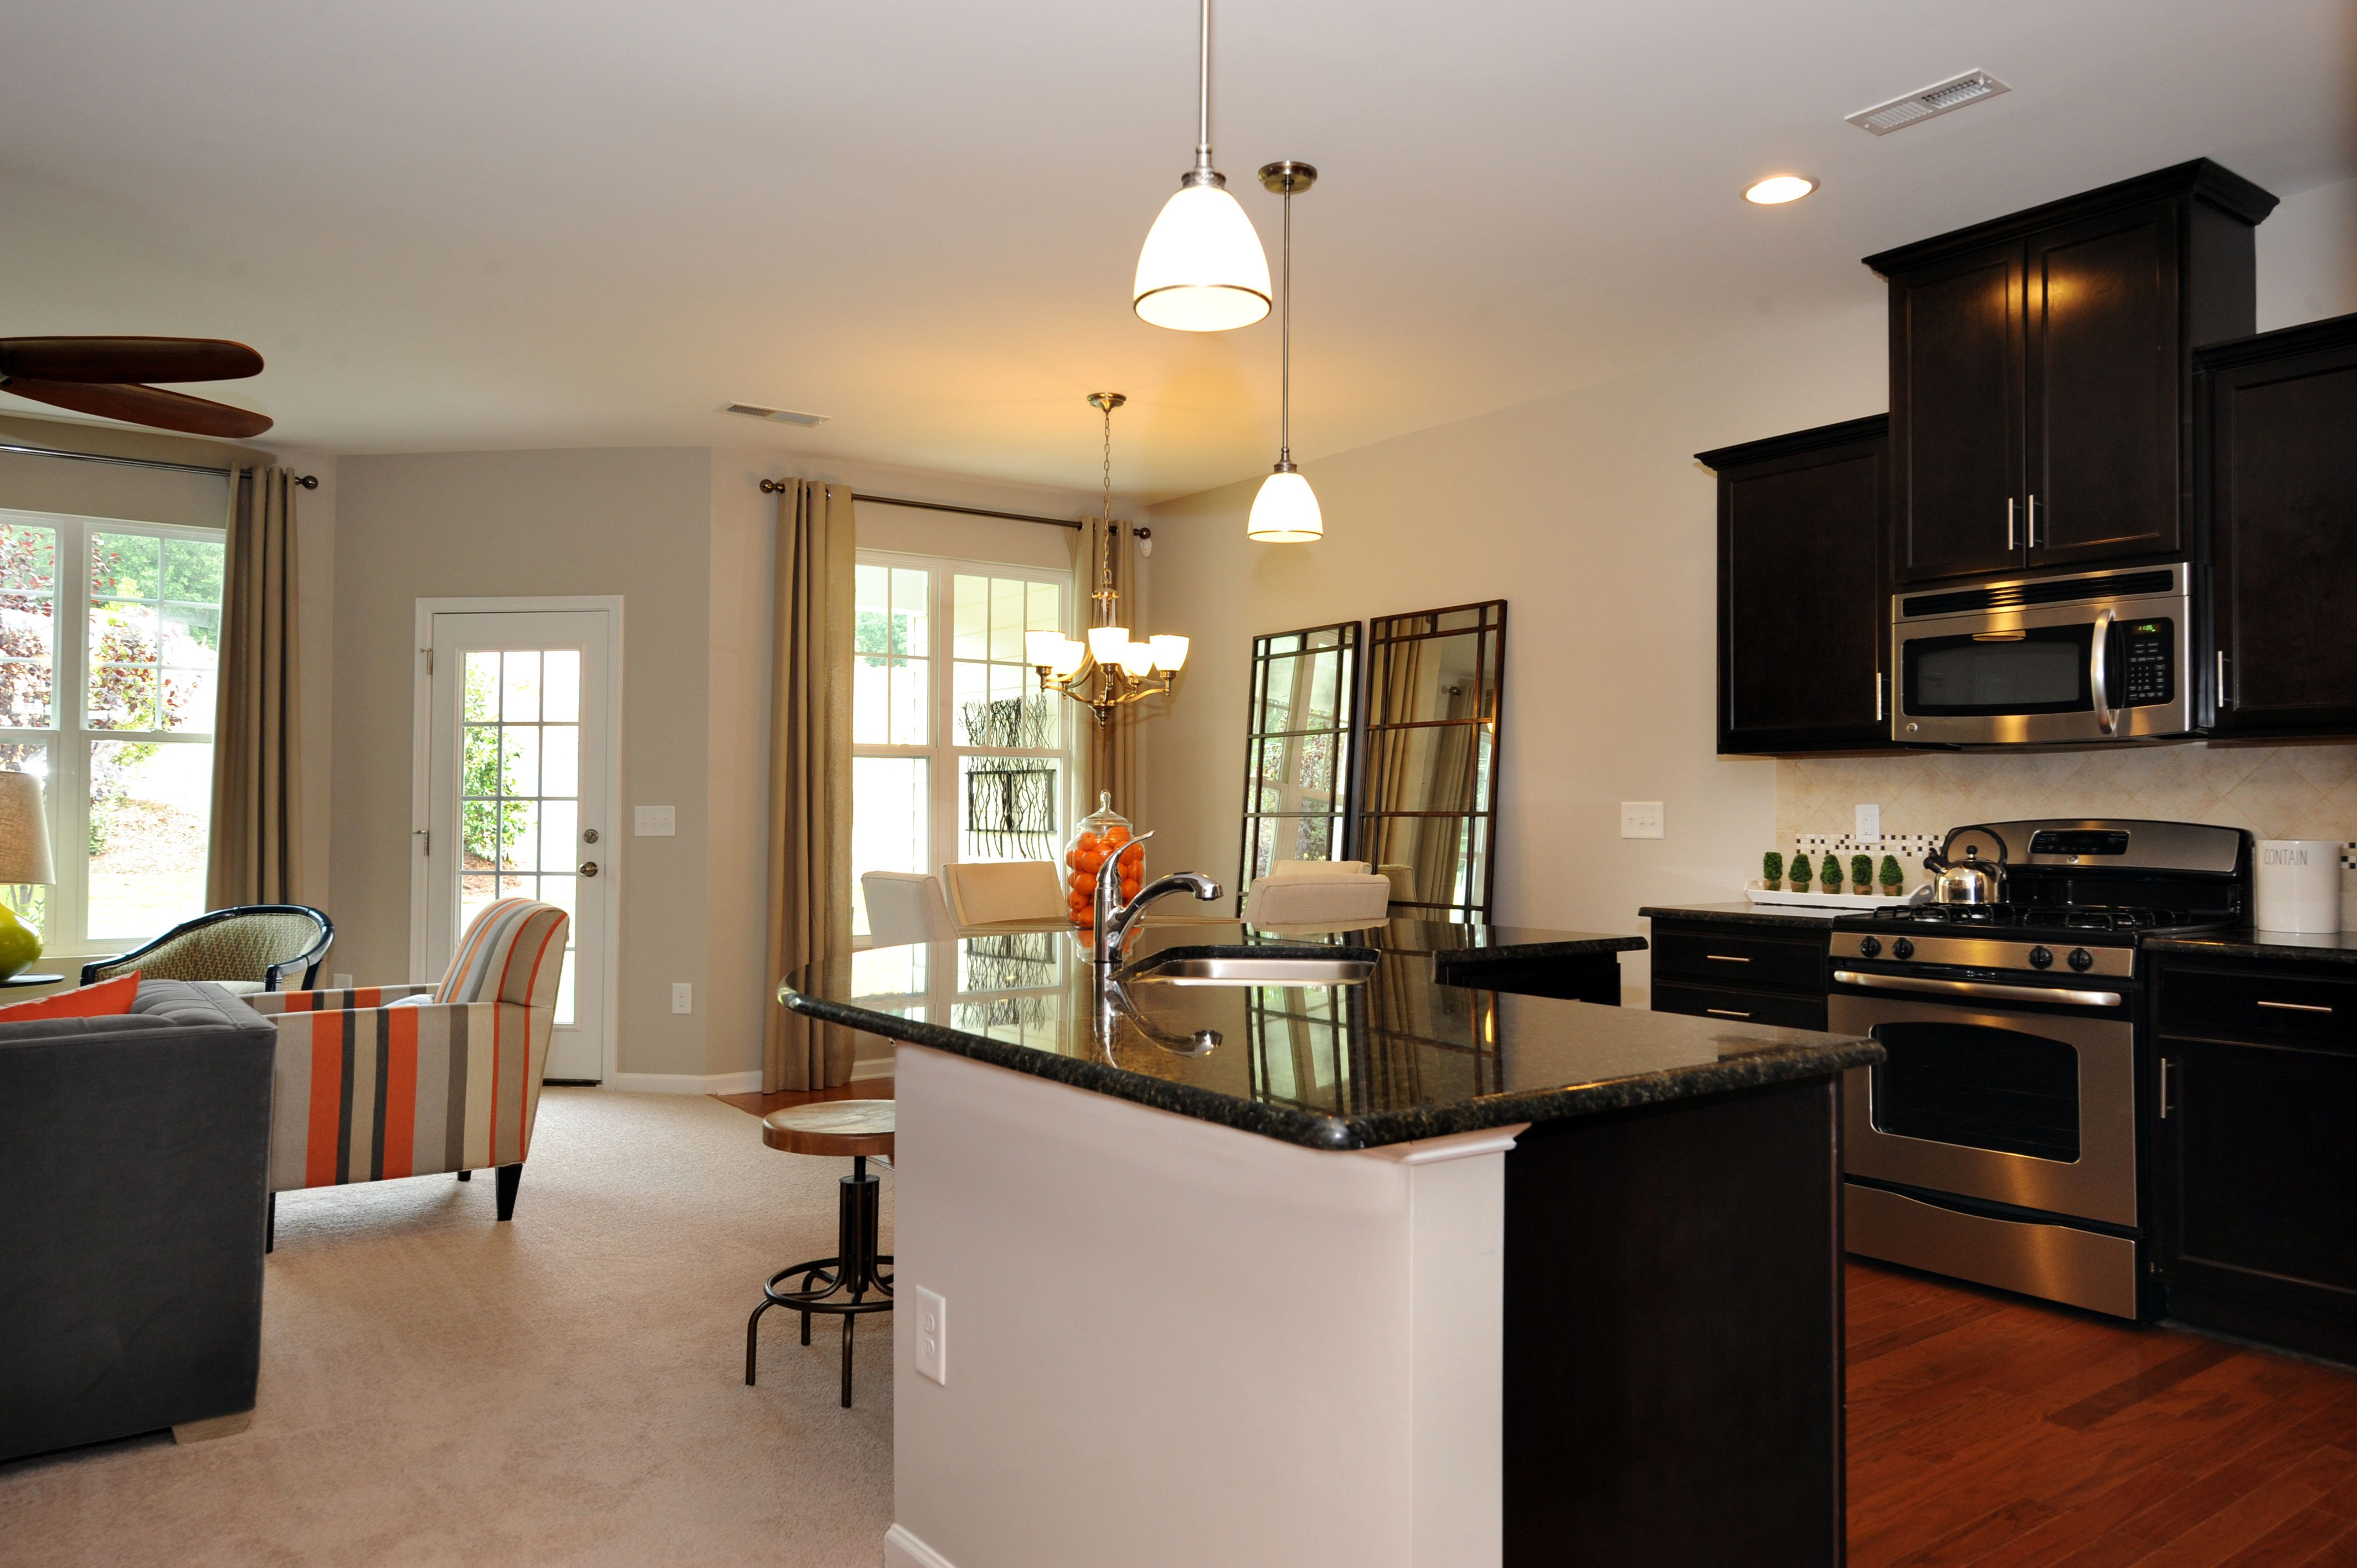 Abbey Kitchen 55 James Townhome Apex Nc Townhouse Designs Home North Carolina Homes